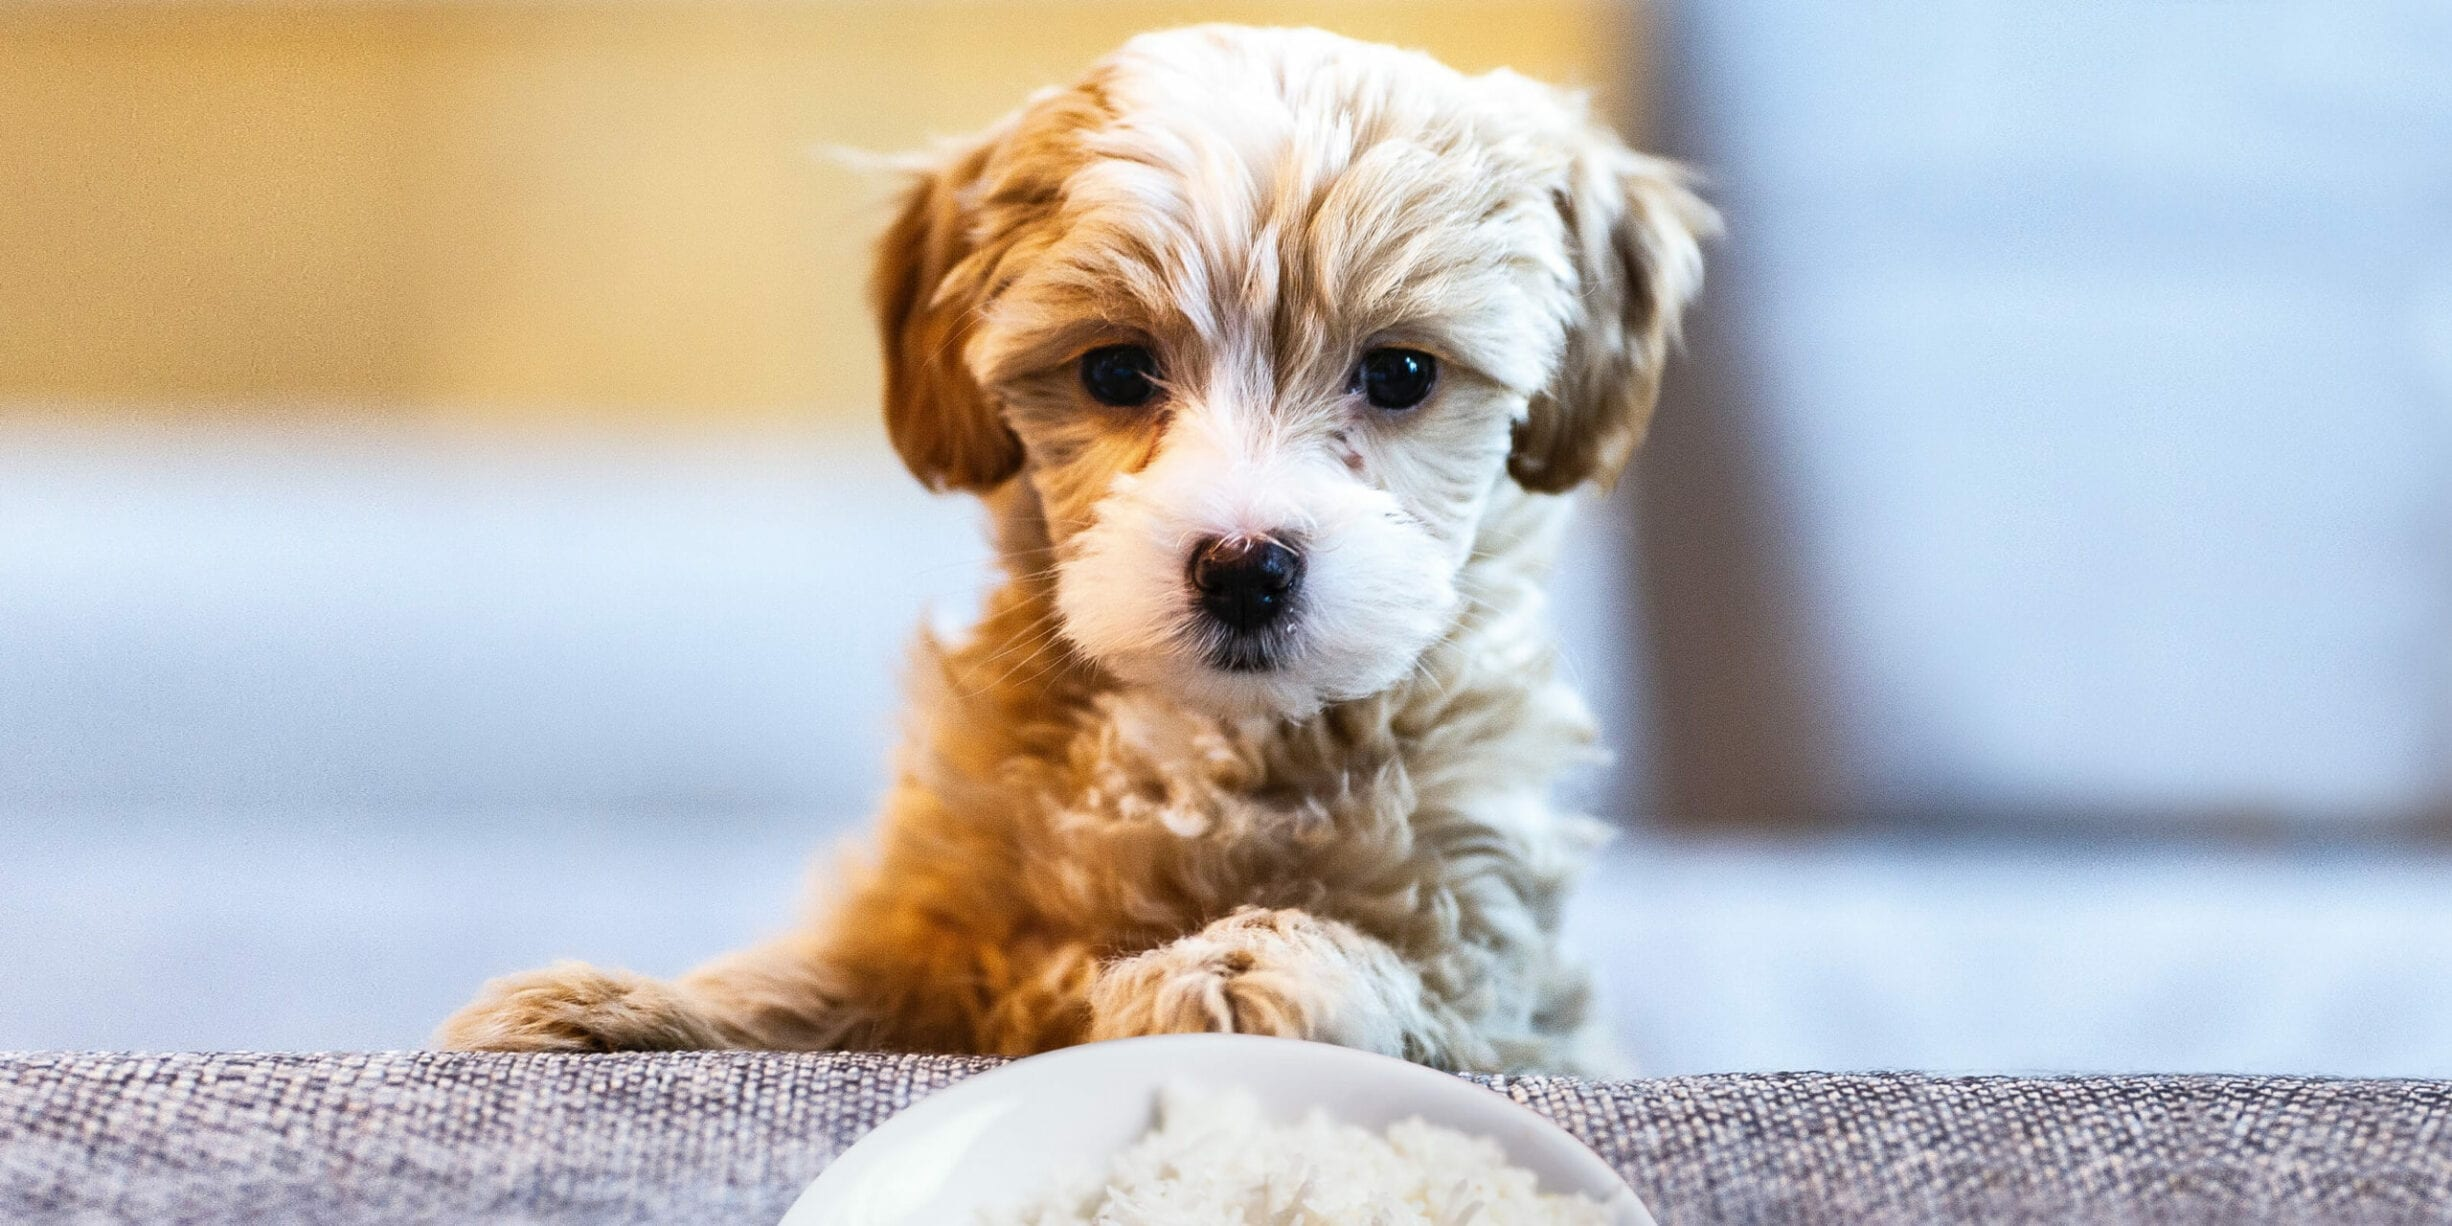 Can Dogs Eat Rice? Feeding Your Dog